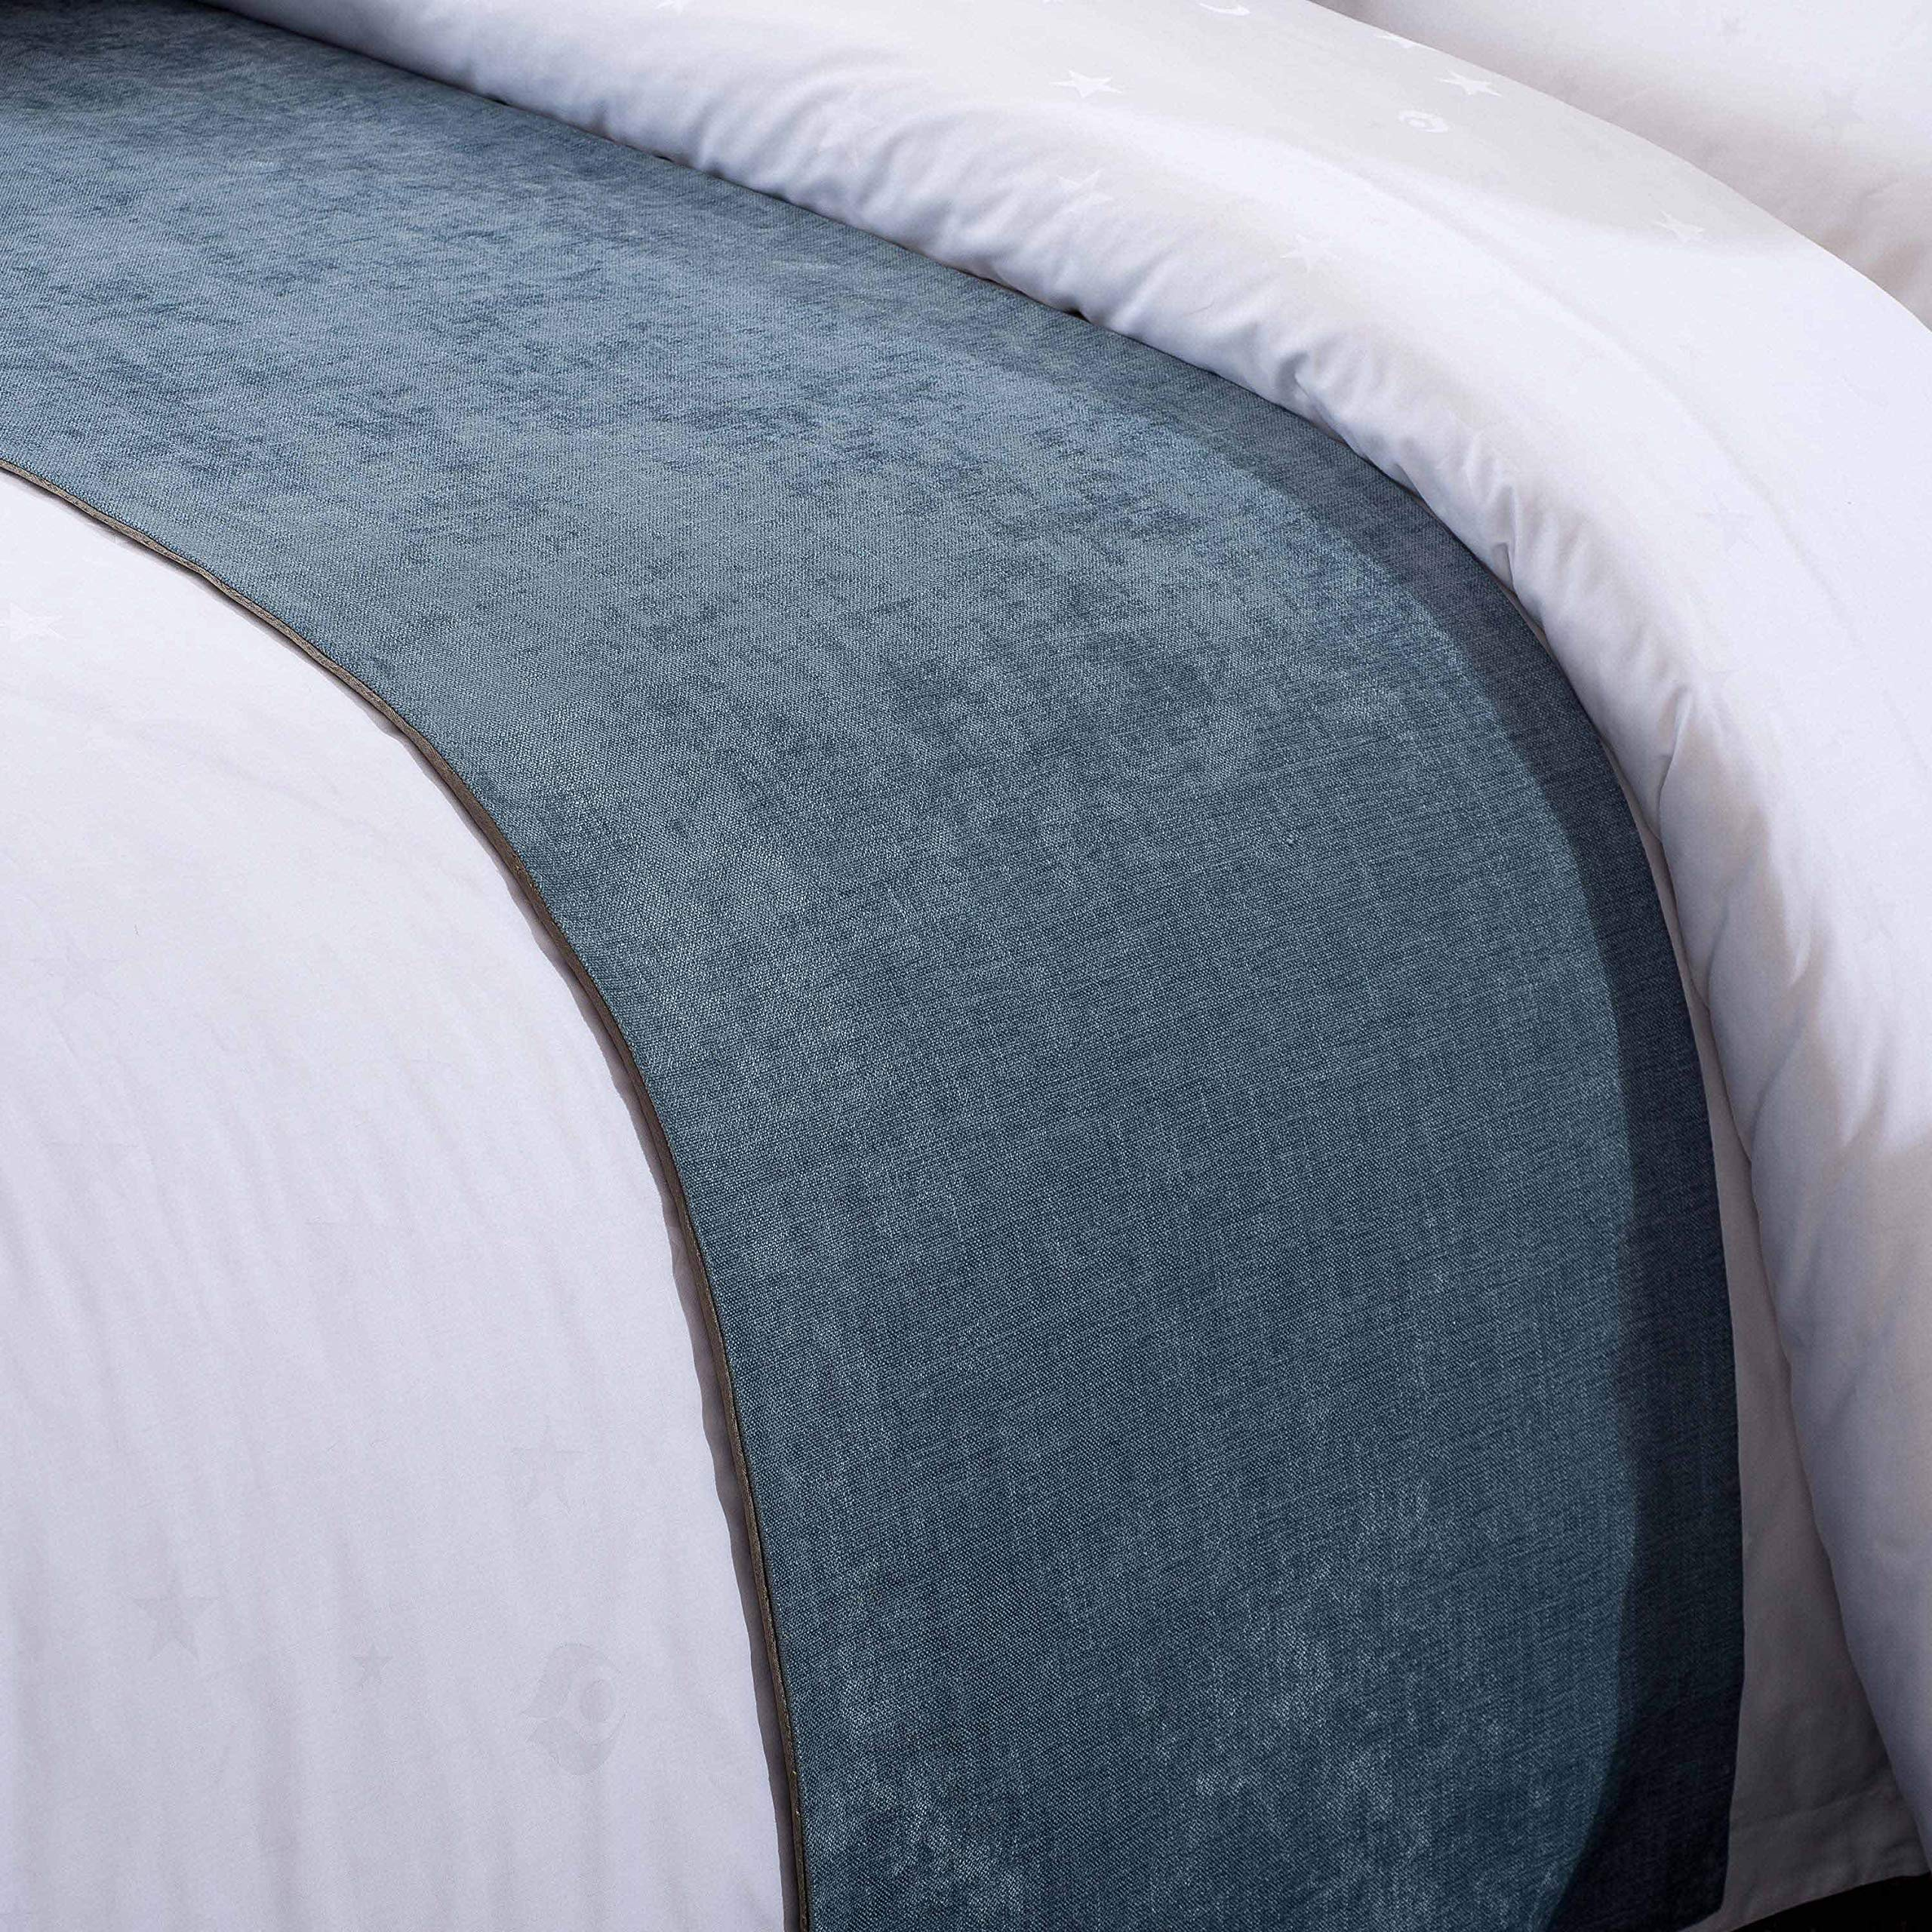 OSVINO Solid Color Chenille Soft No Fading Modern Bed Runner Bedding Scarf Protection, Blue 260X50cm for 200cm Bed by OSVINO (Image #3)